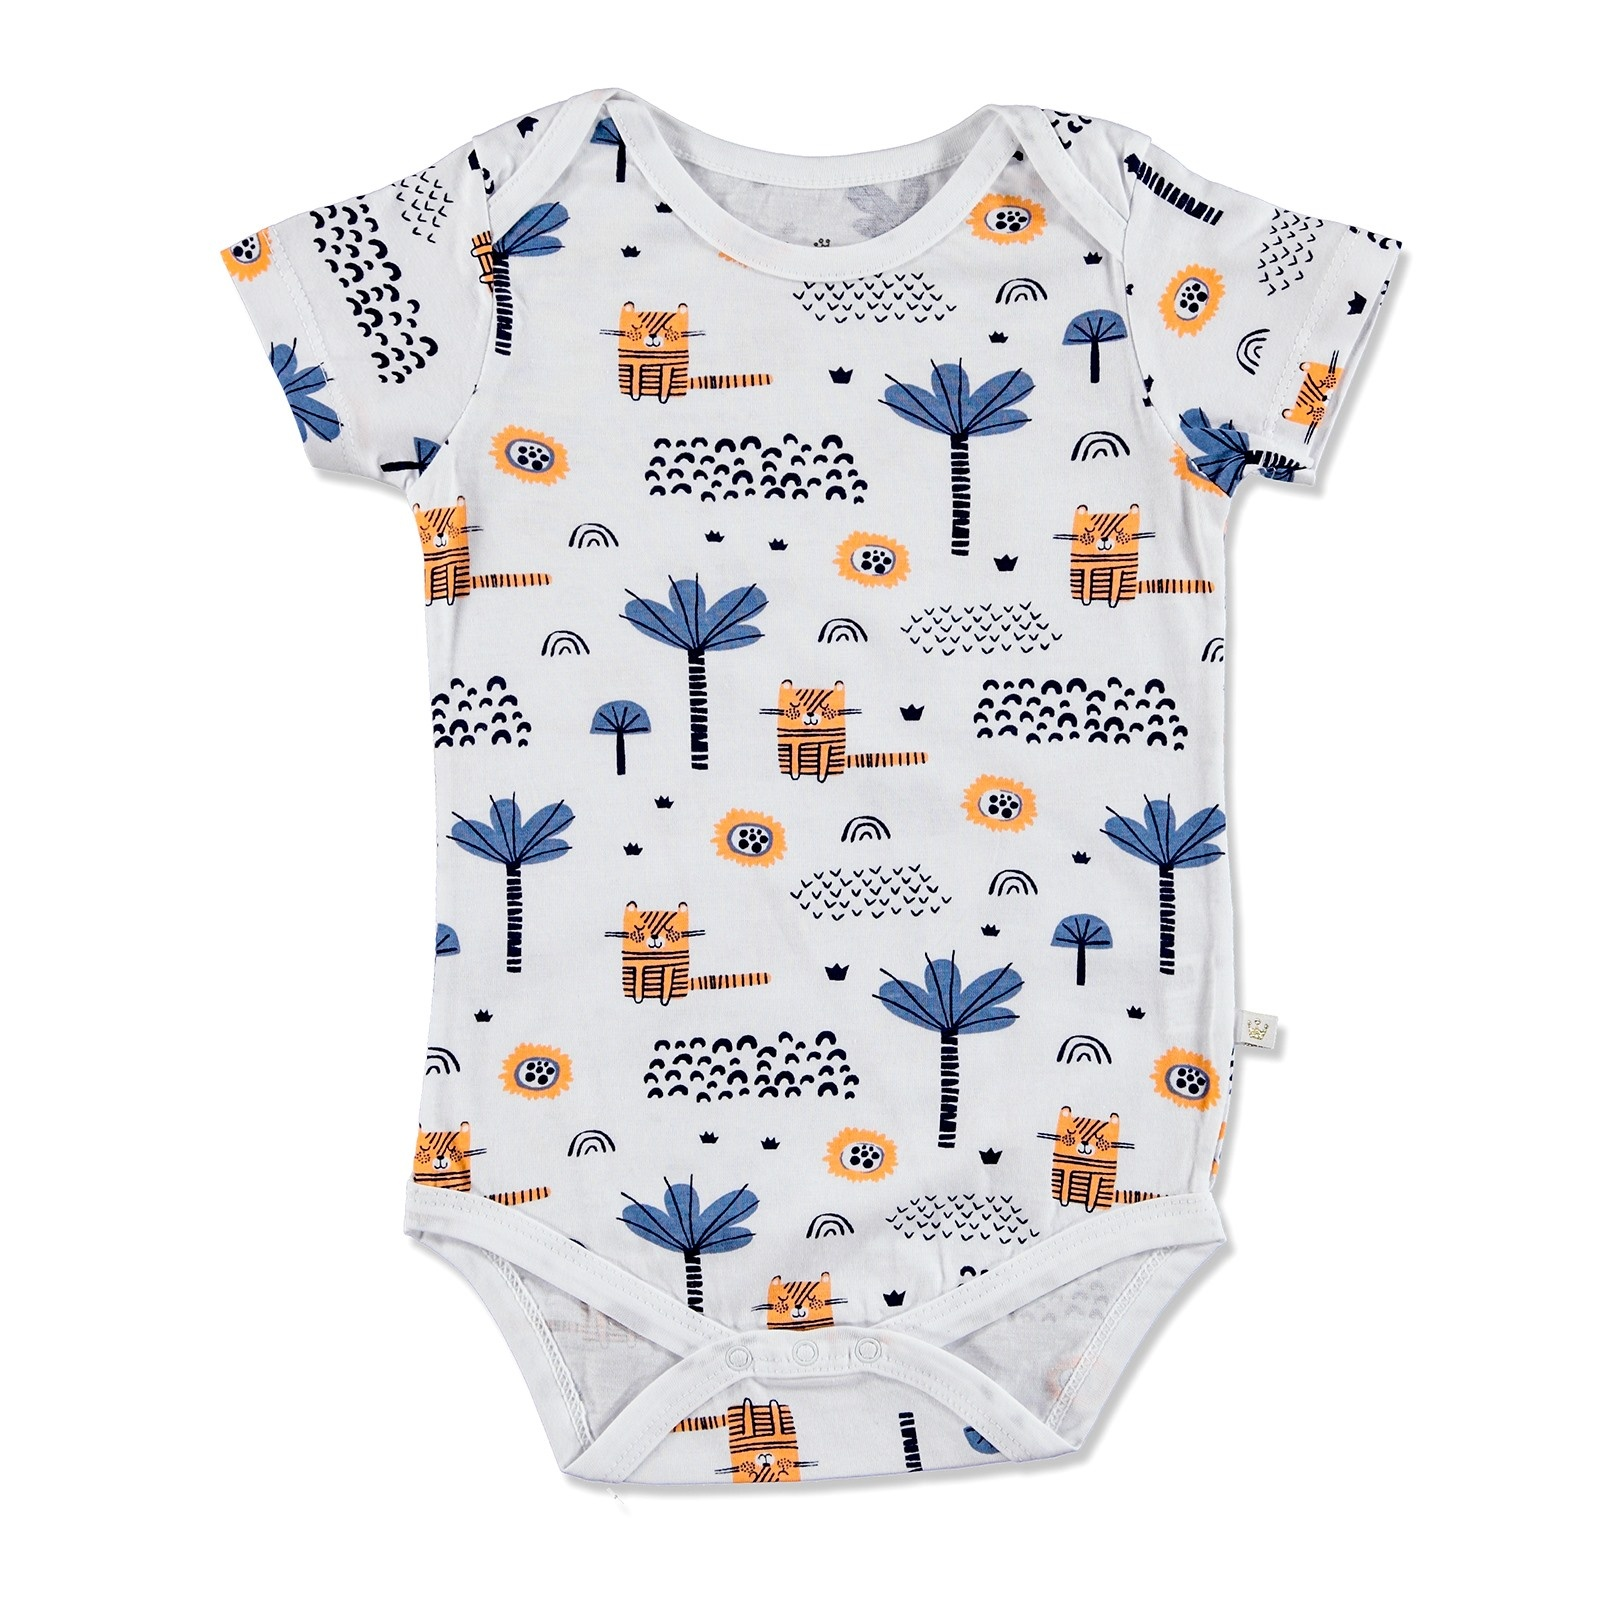 Ebebek For My Baby Summer Boy Alf Supreme Short Sleeve Bodysuit